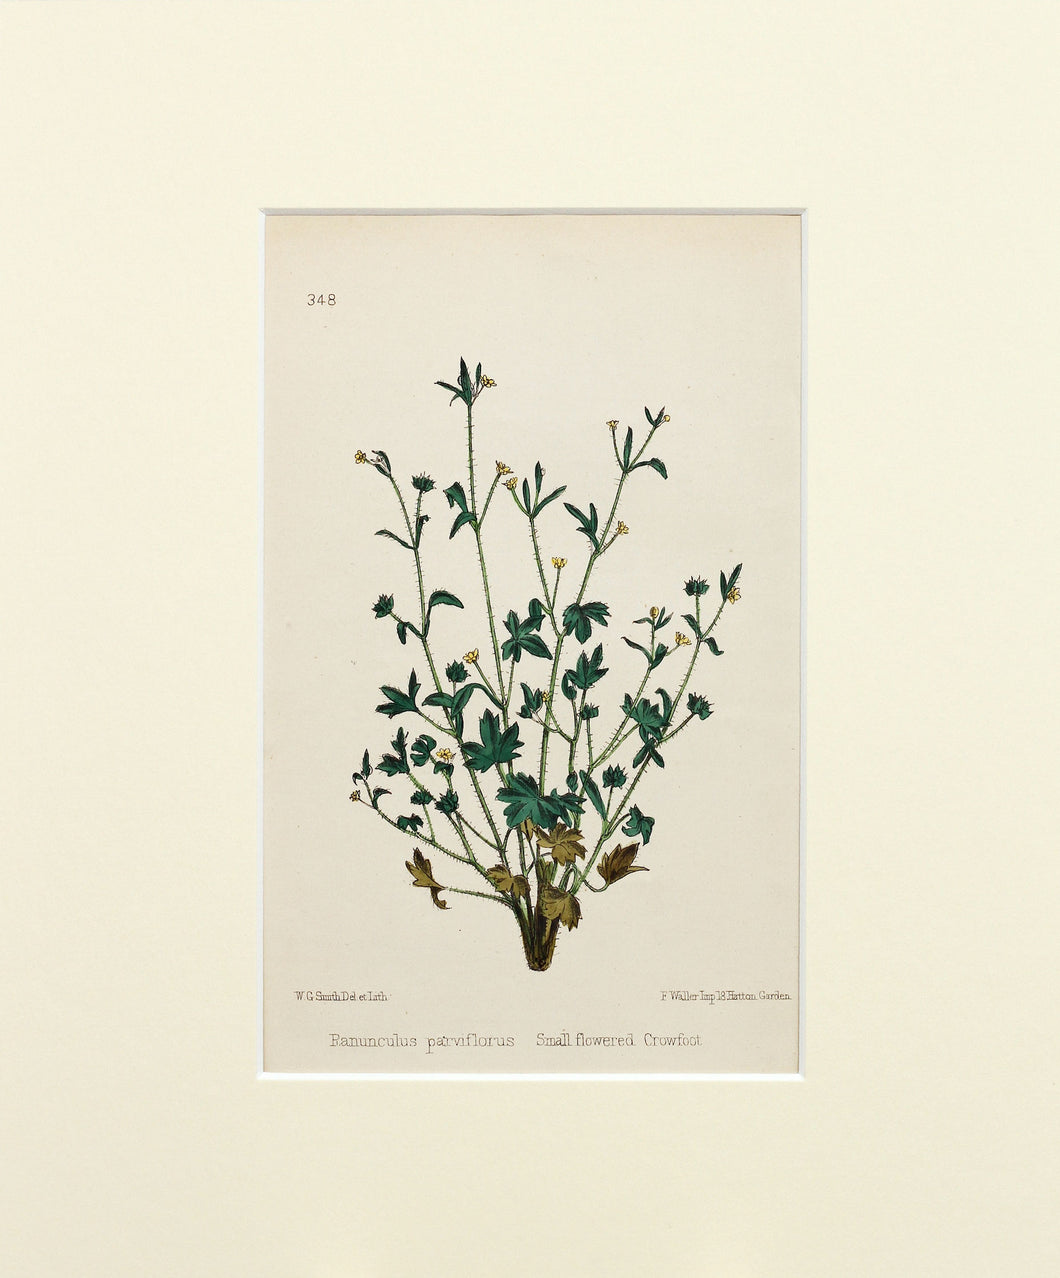 Small Flowered Crowfoot - Antique Wild Flower Lithograph circa 1860s